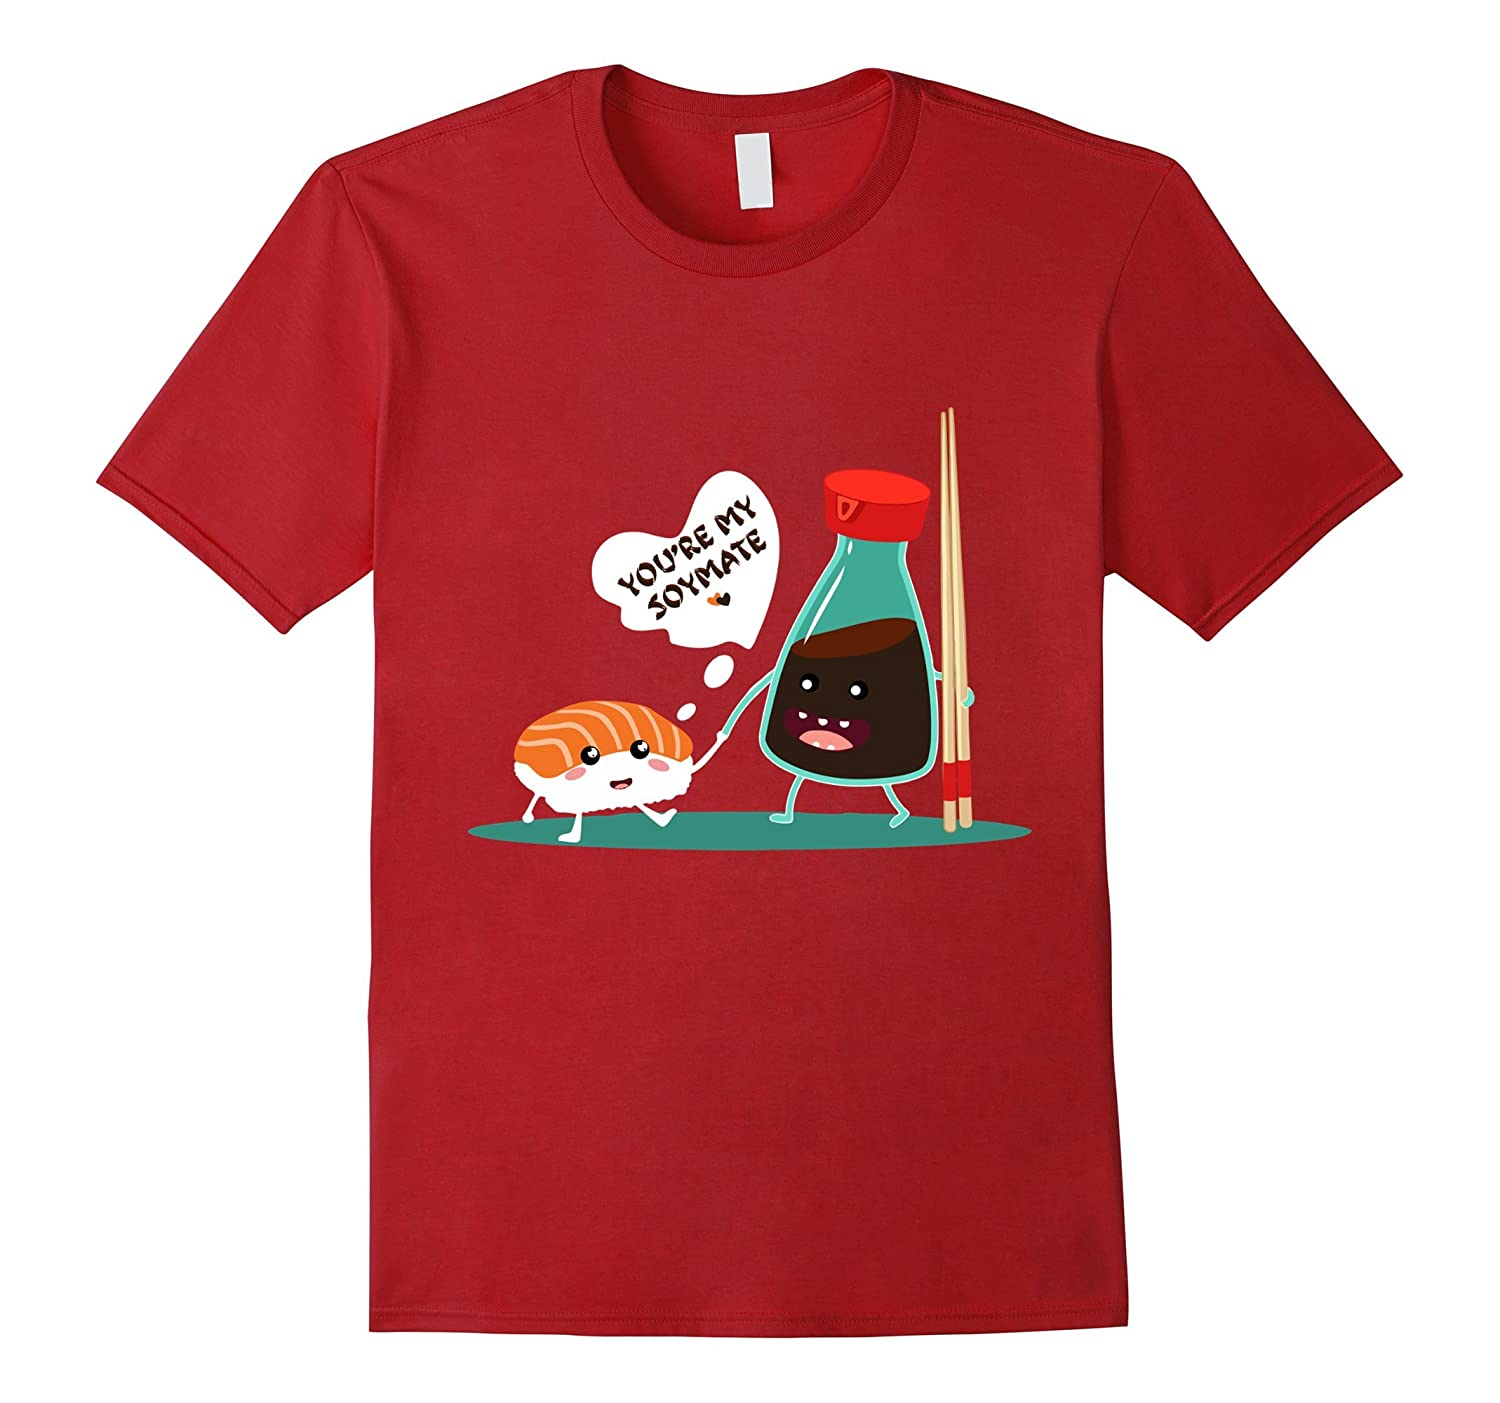 Youre My Soymate (Soulmate) Sushi Couples Japanese T-Shirt-BN